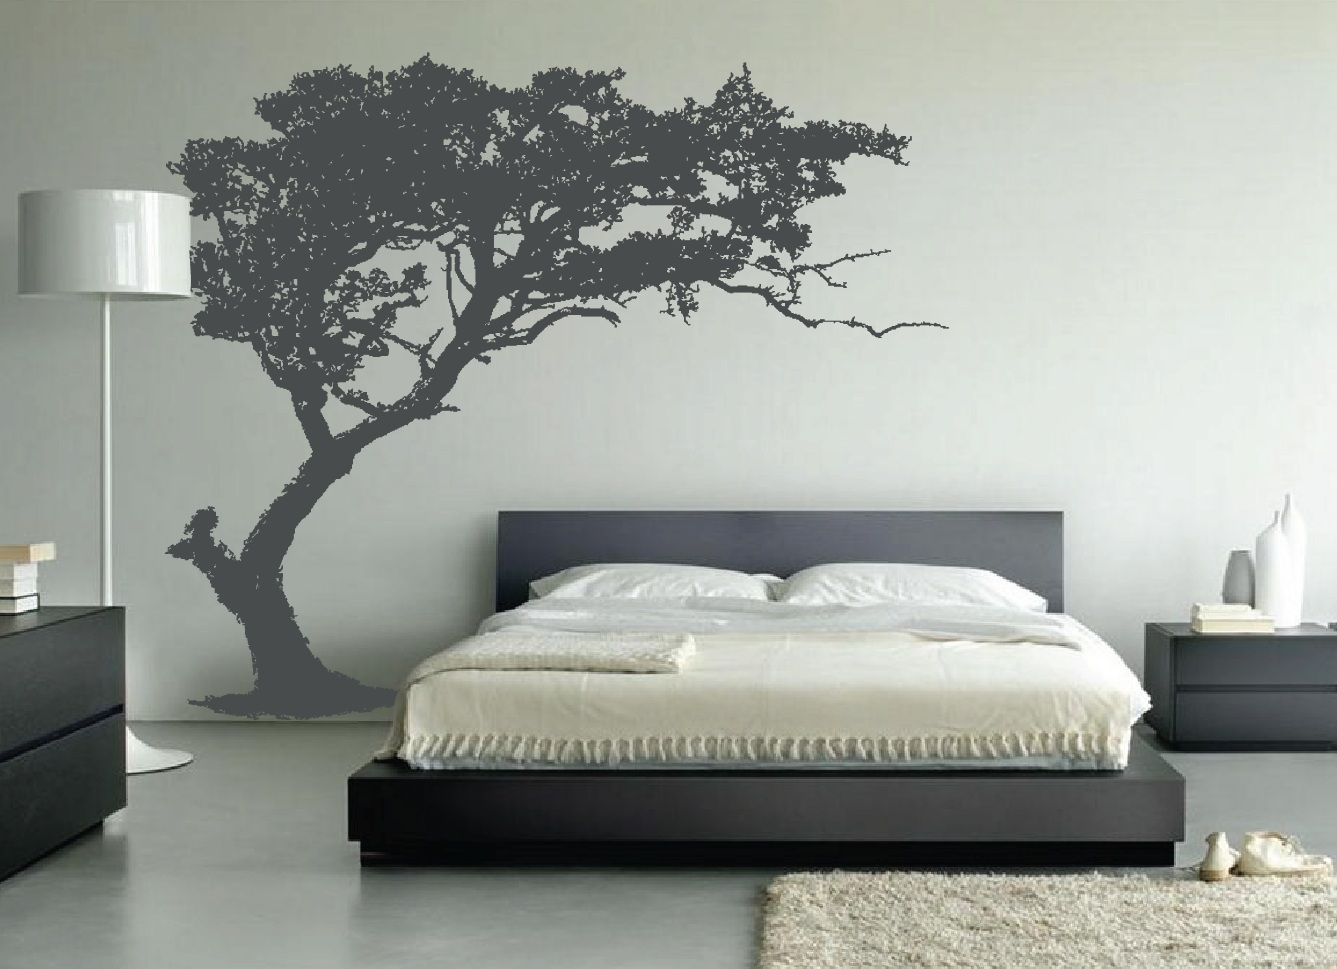 Remarkable Bedroom Tree Wall Art 1337 x 969 · 232 kB · jpeg